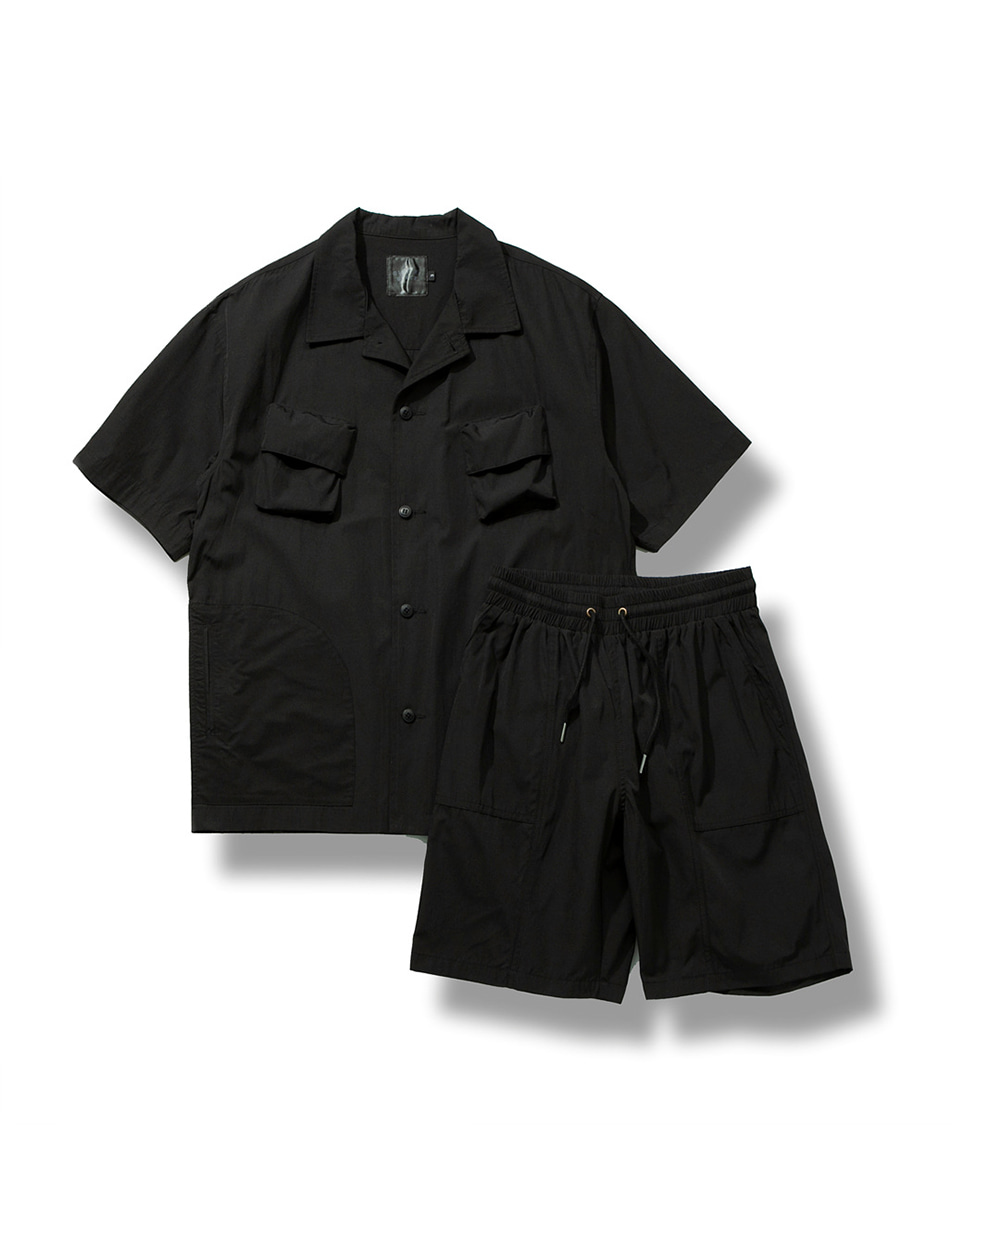 C/P FATIGUE SET-UP BLACK